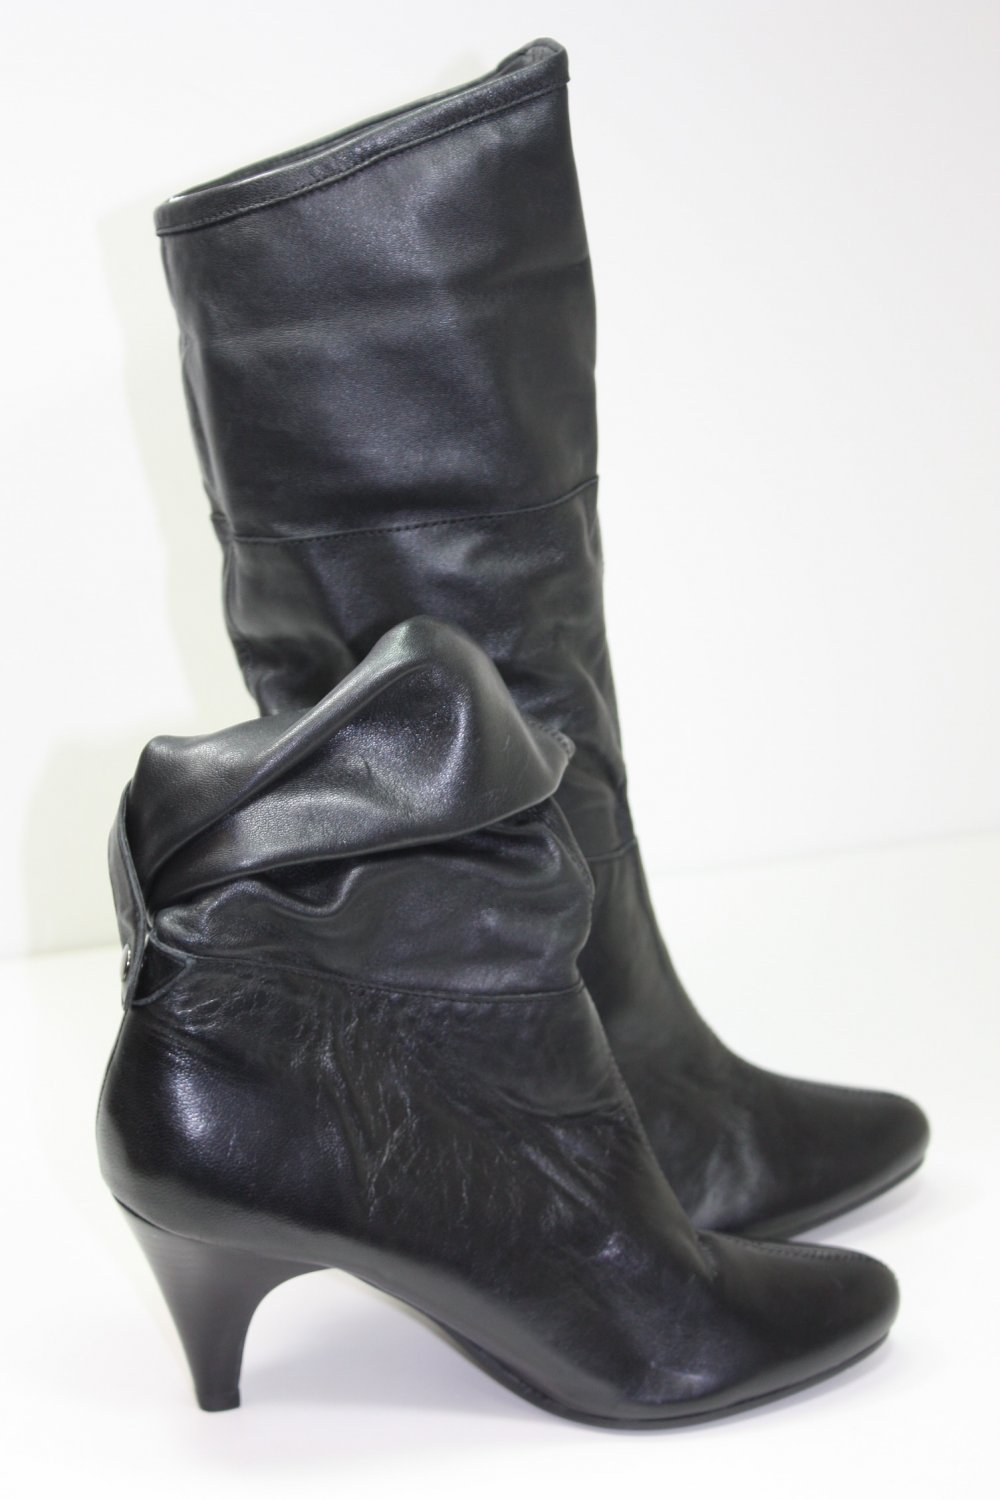 Style & Co Snappy Foldover Boots Black Shoes US 5.5 $11